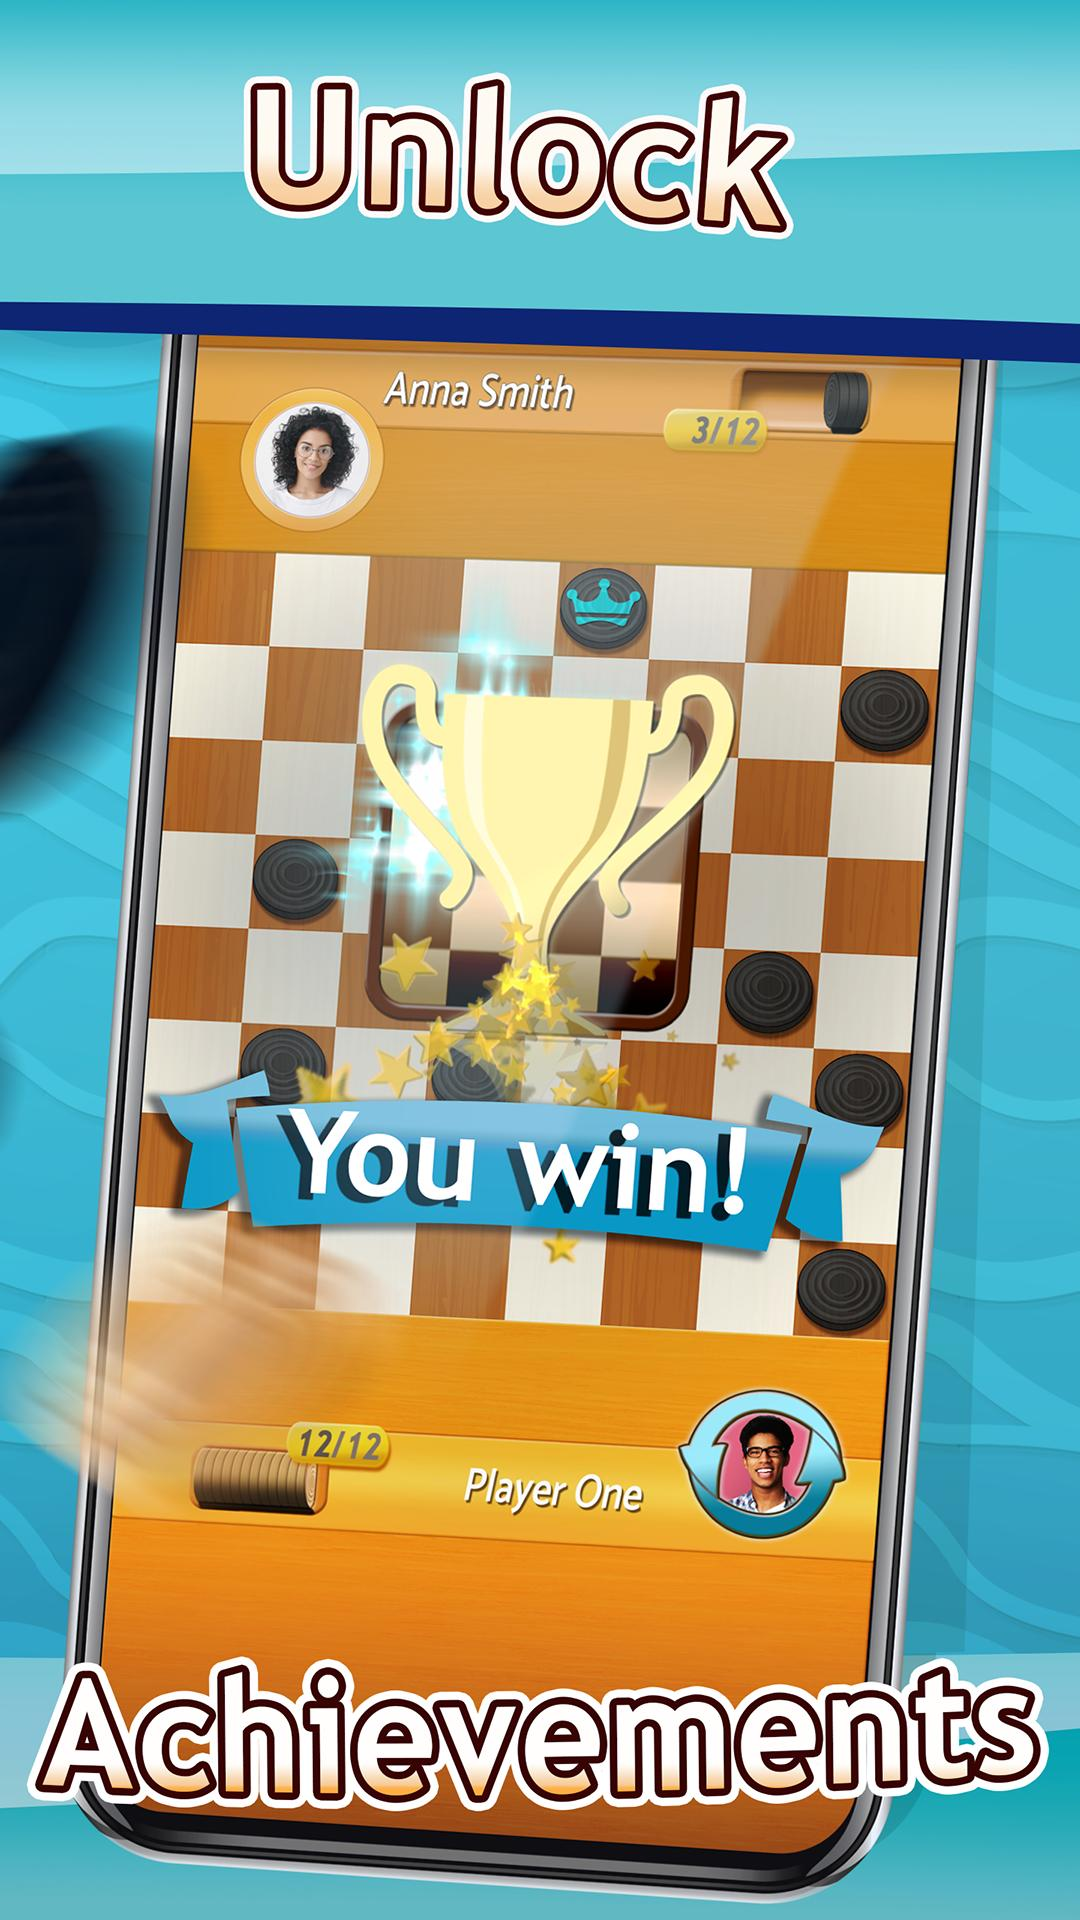 Checkers Draughts Multiplayer Board Game 2.4.4 Screenshot 5